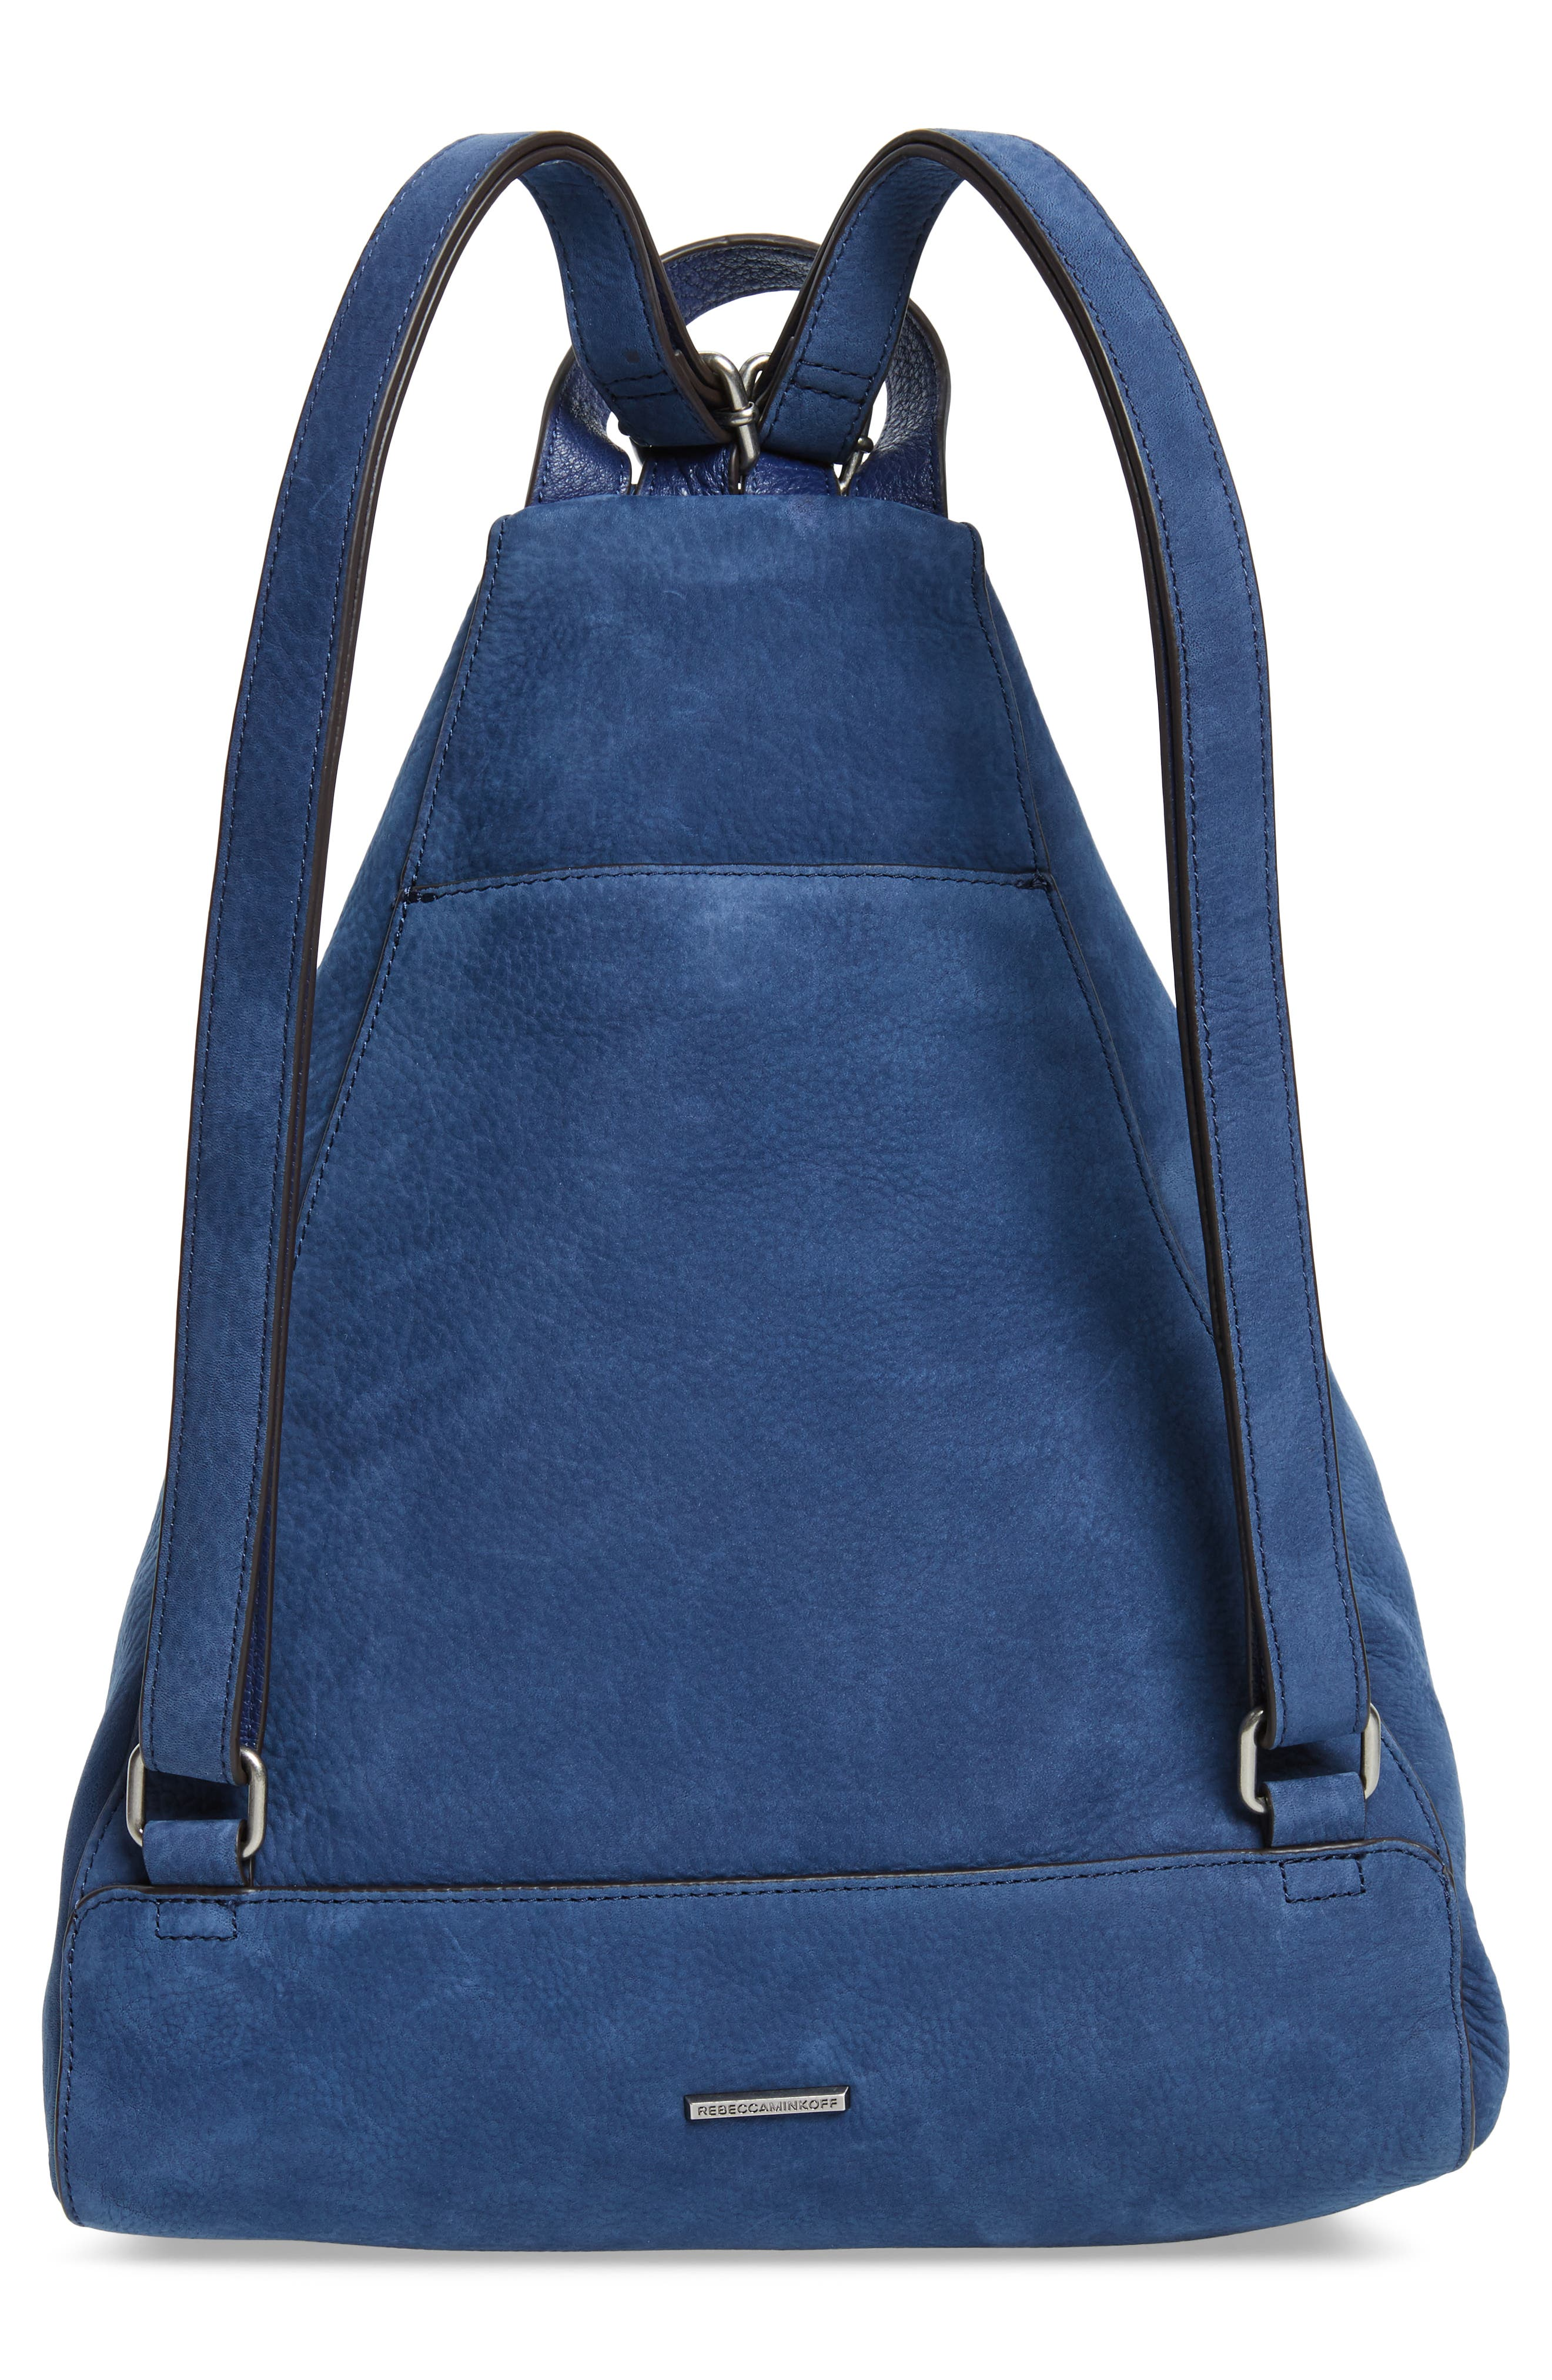 Jamie Leather Backpack,                             Alternate thumbnail 6, color,